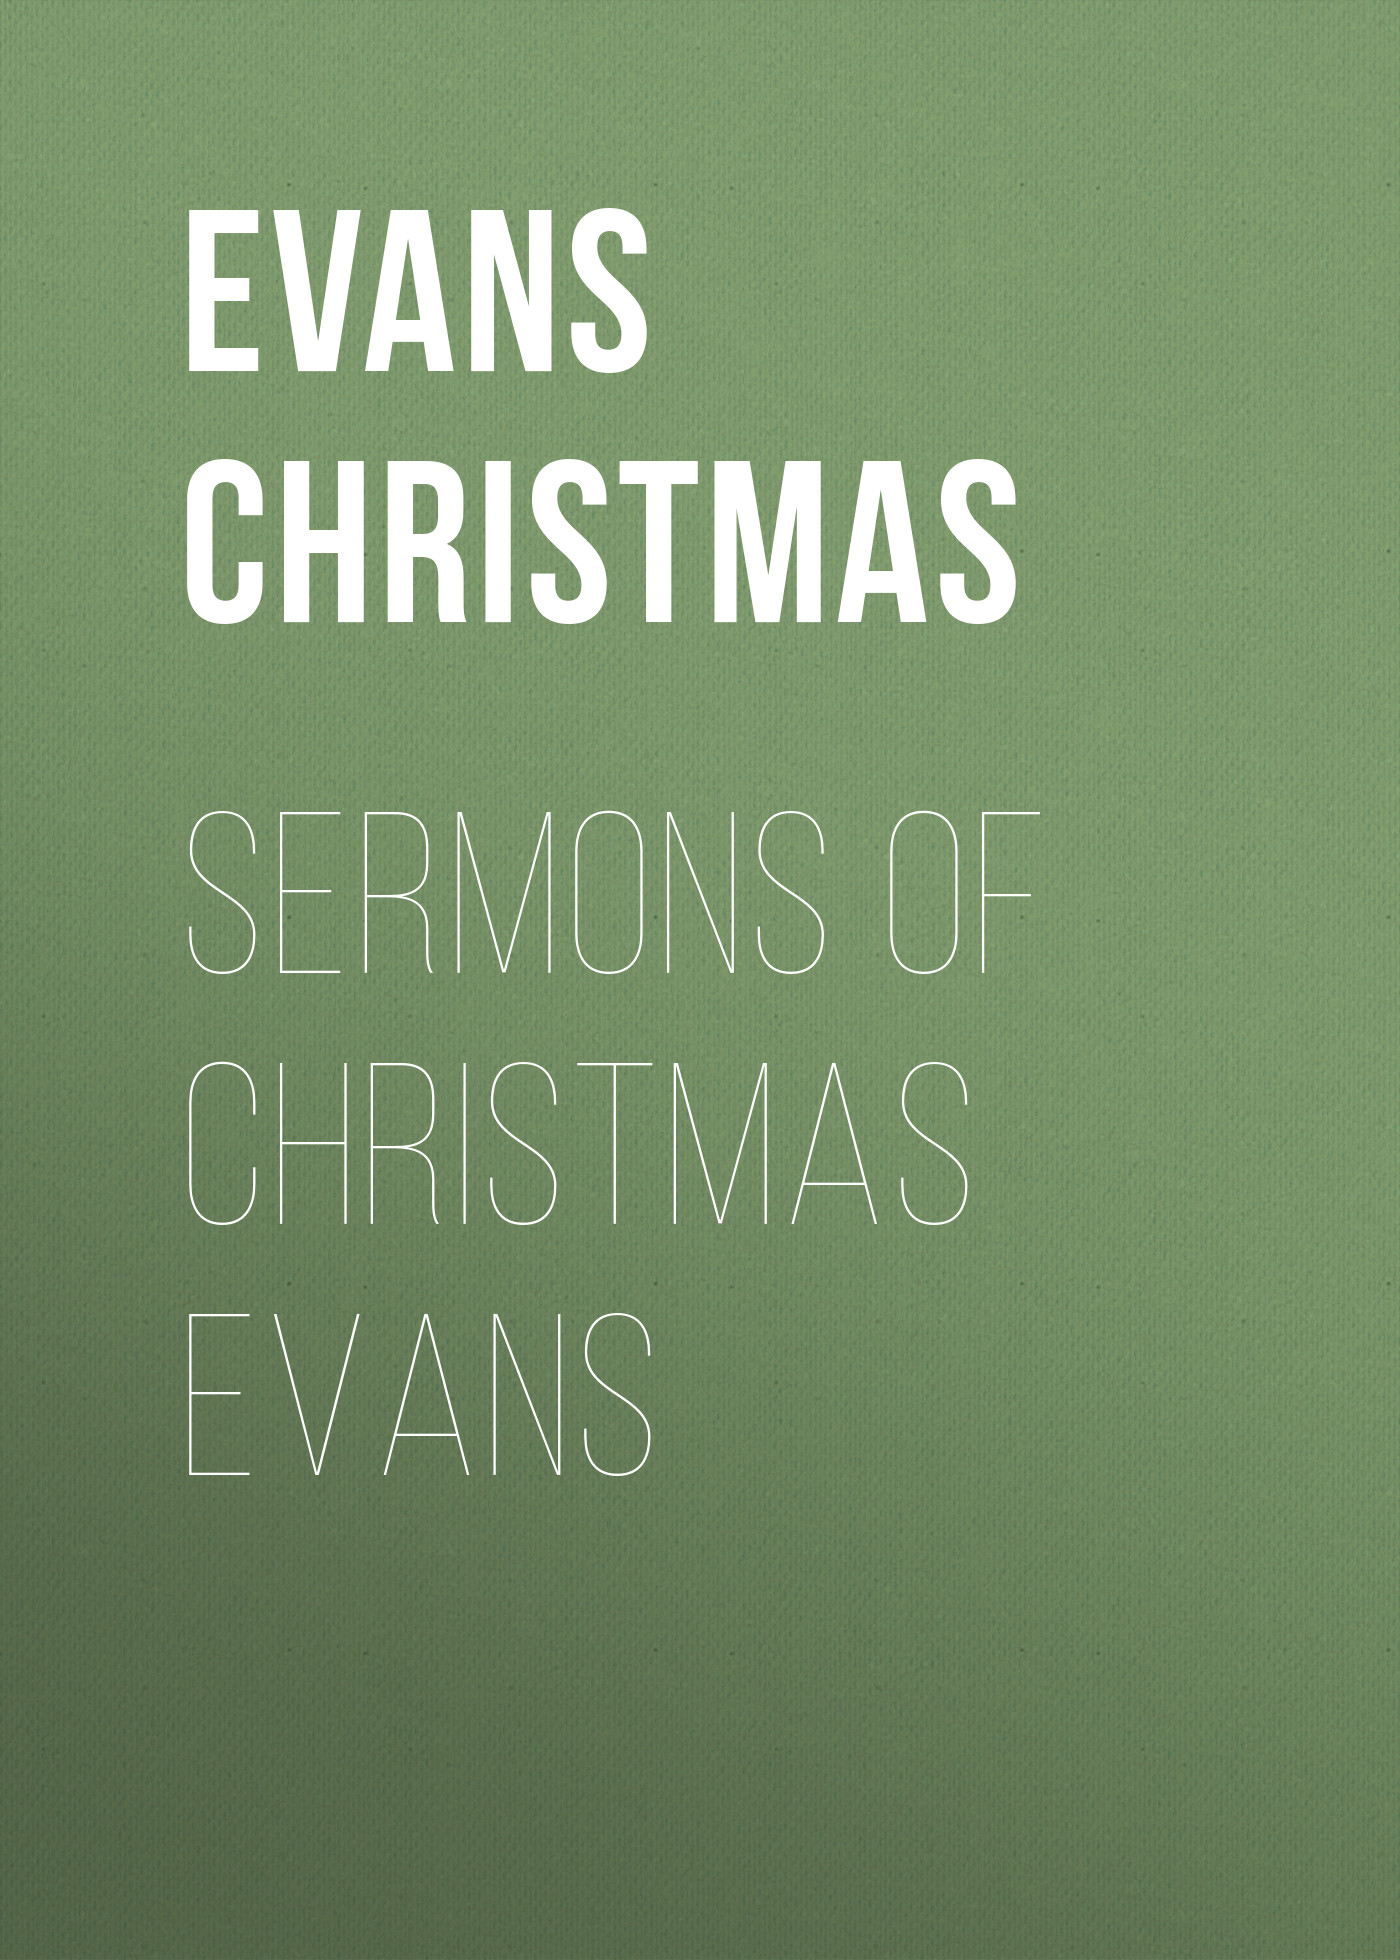 Evans Christmas Sermons of Christmas Evans адаптер питания apple 60w magsafe2 md565